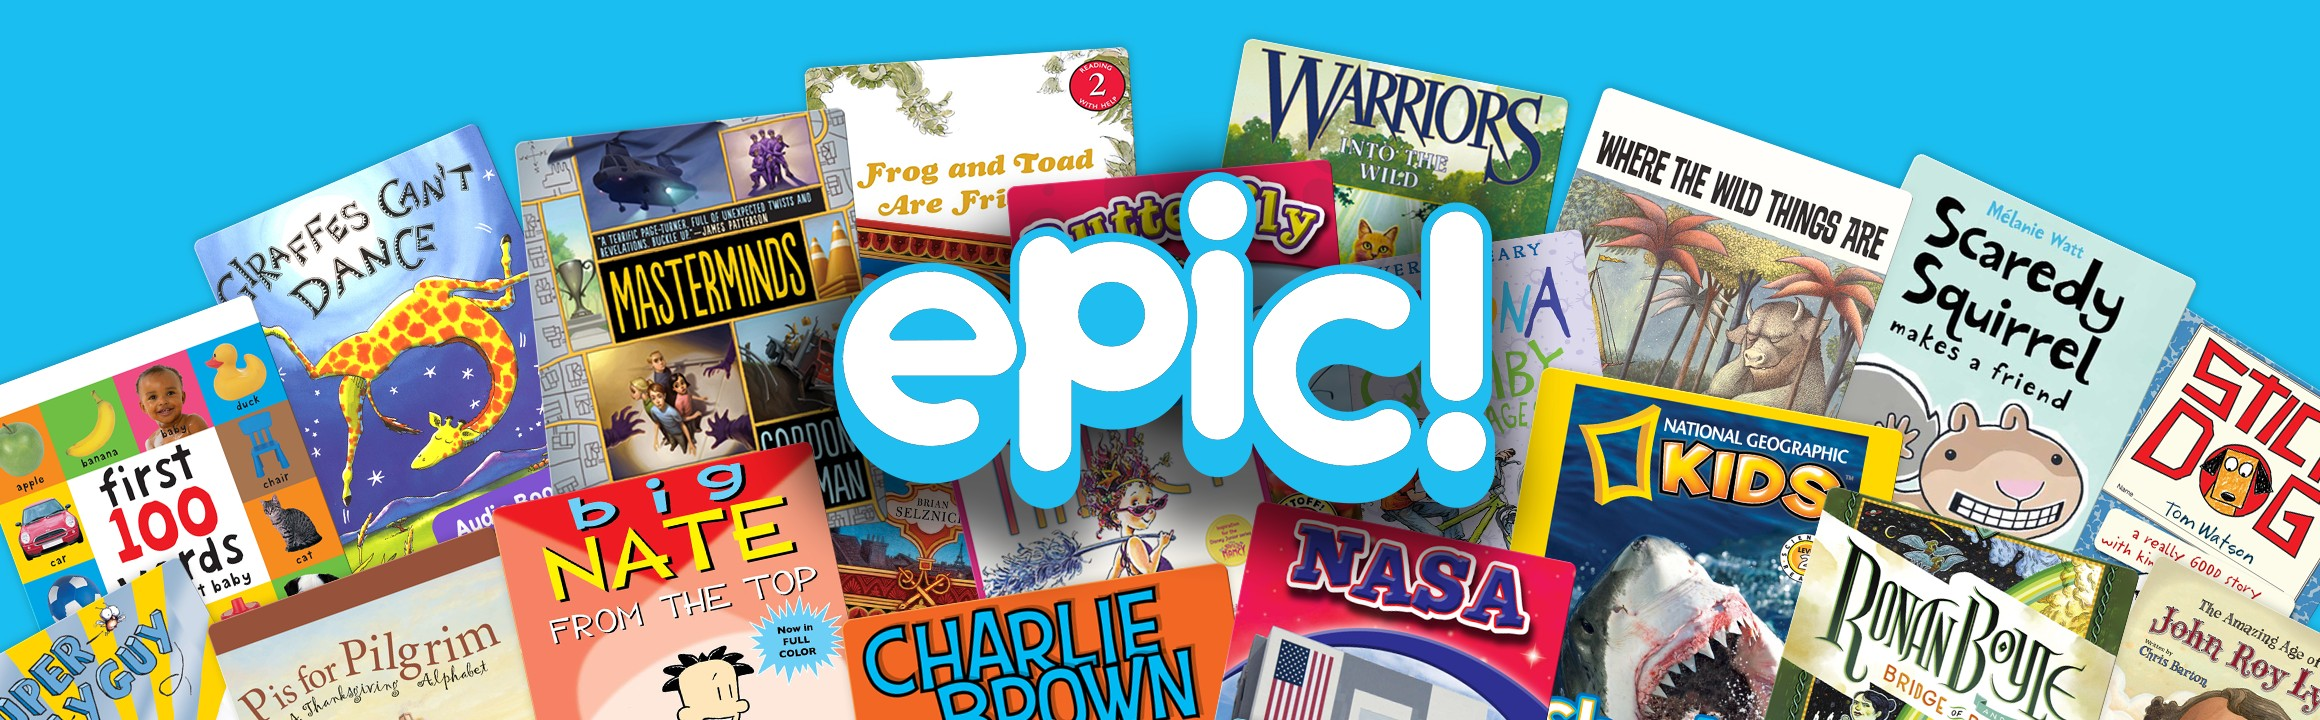 Epic For Kids Linkedin By bryan formhals | april 25, 2017. epic for kids linkedin